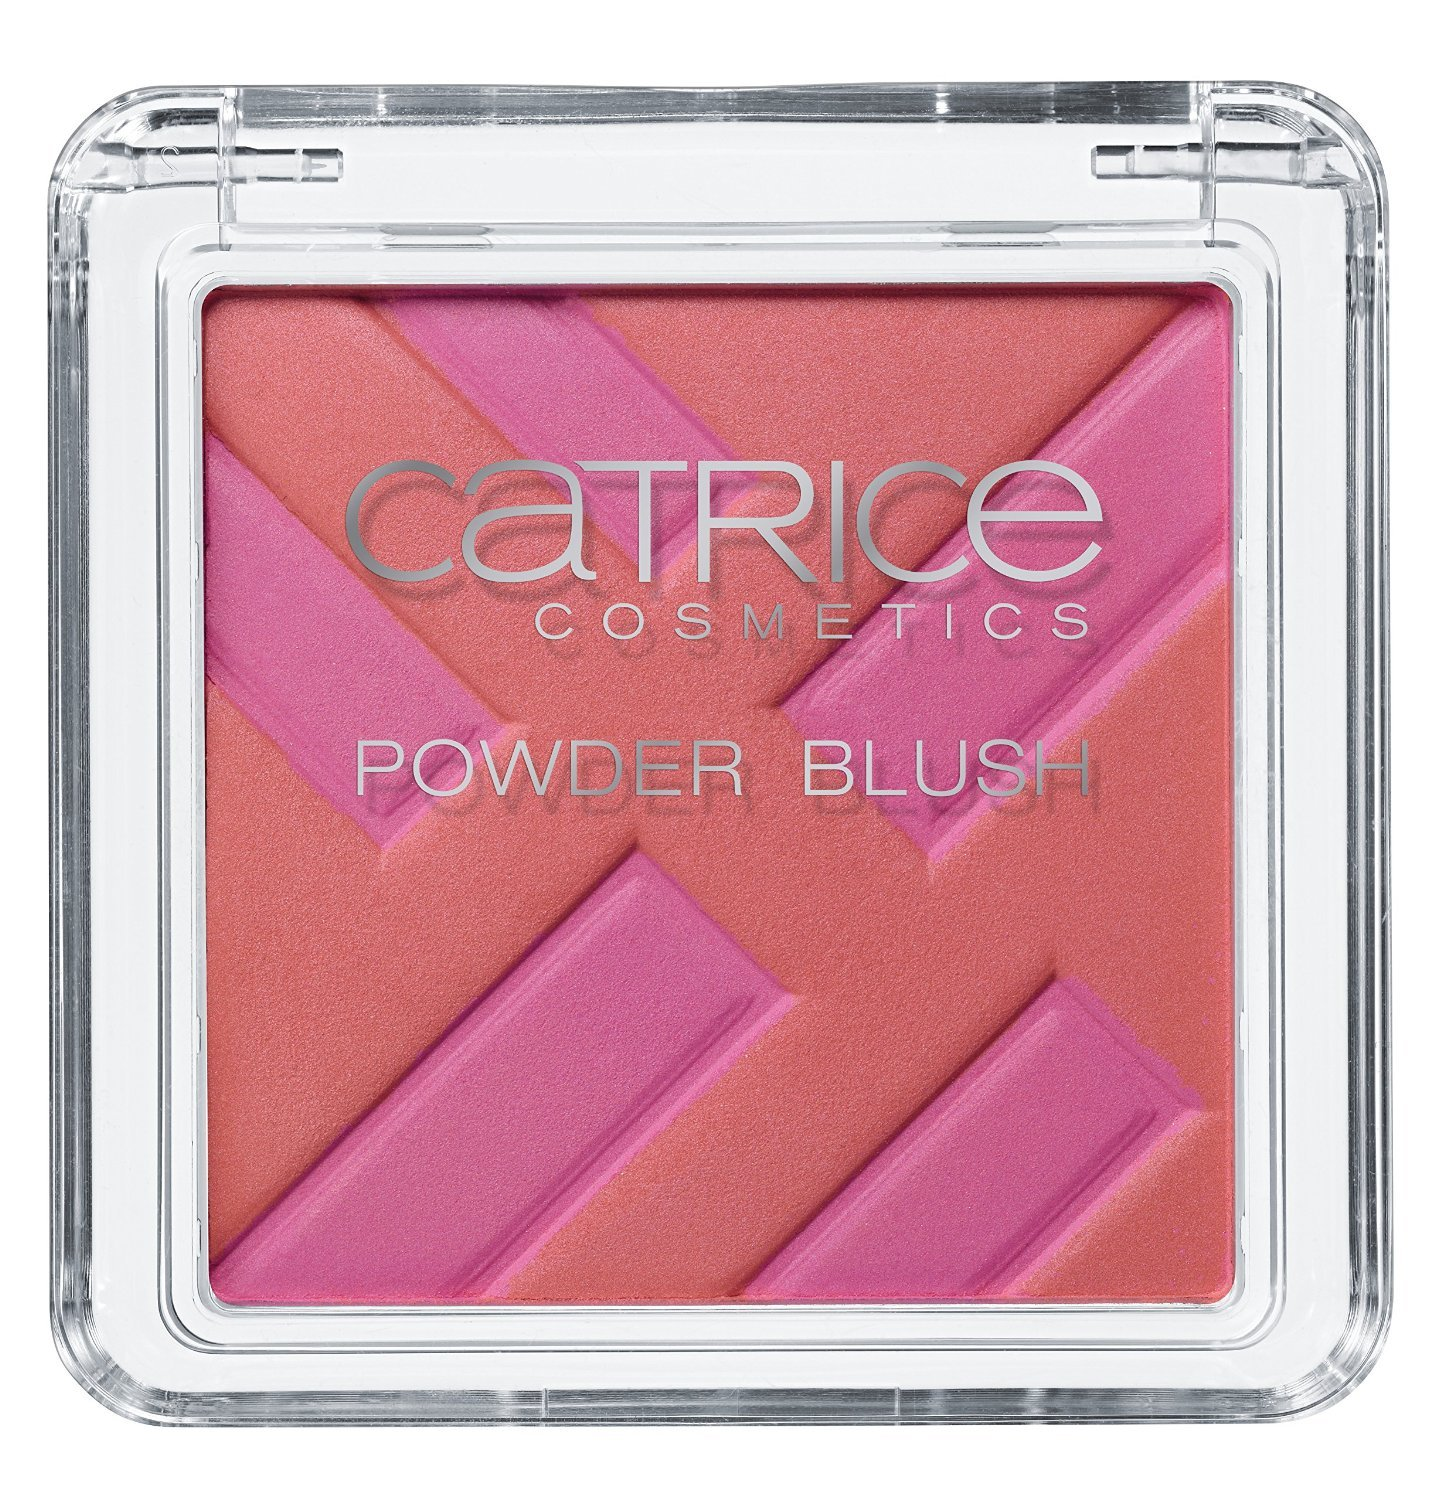 Catrice Edition limitada Graphic Grace polvo rojo, Soyeuse que Procure un bronceado NATURELLEMENT calefactor, de color C01 Structured Shapes, 8.2 g, 0.28 oz.